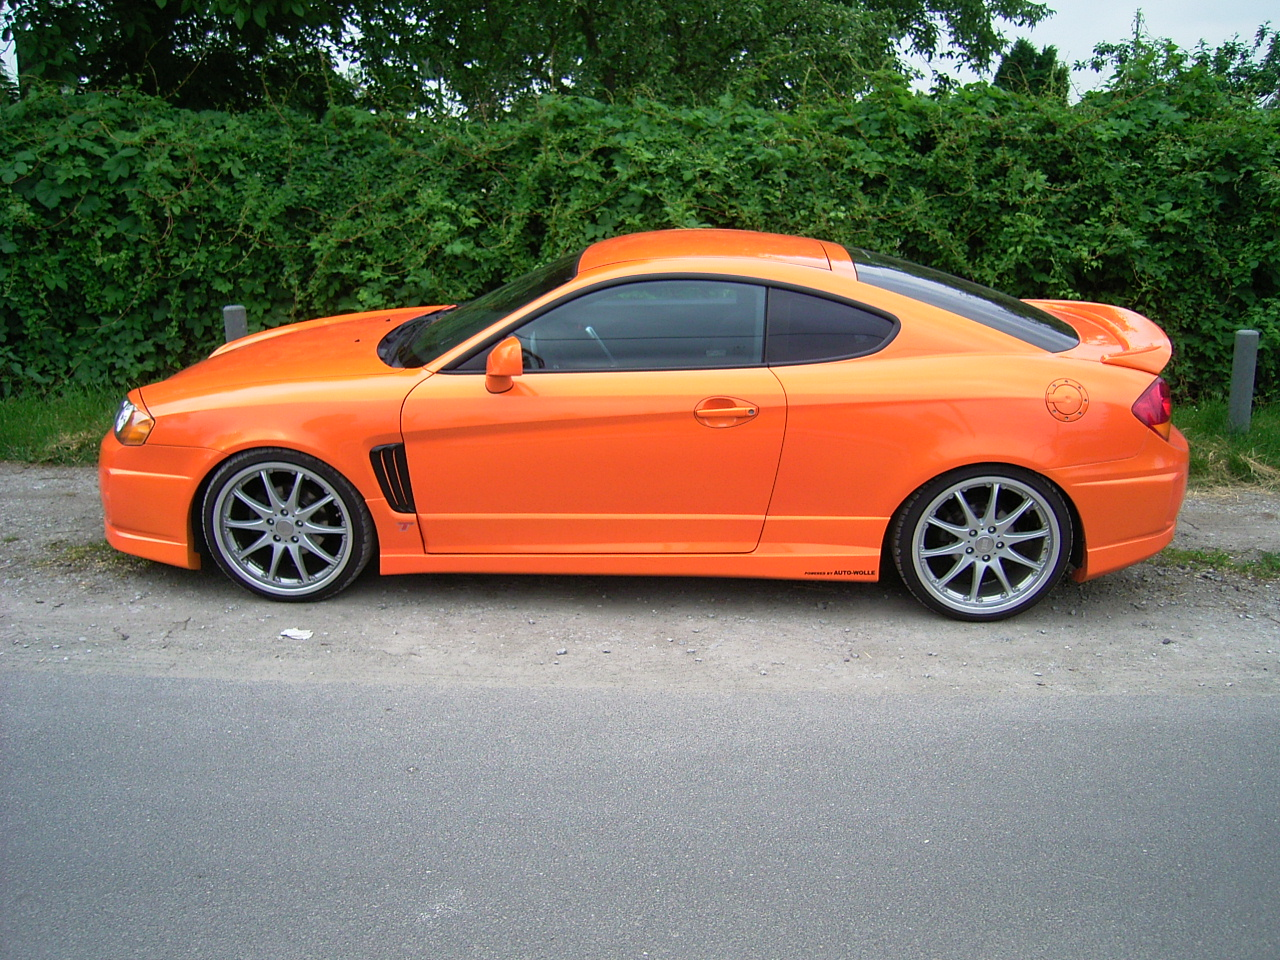 2001 Hyundai Coupe gk pictures information and specs Auto